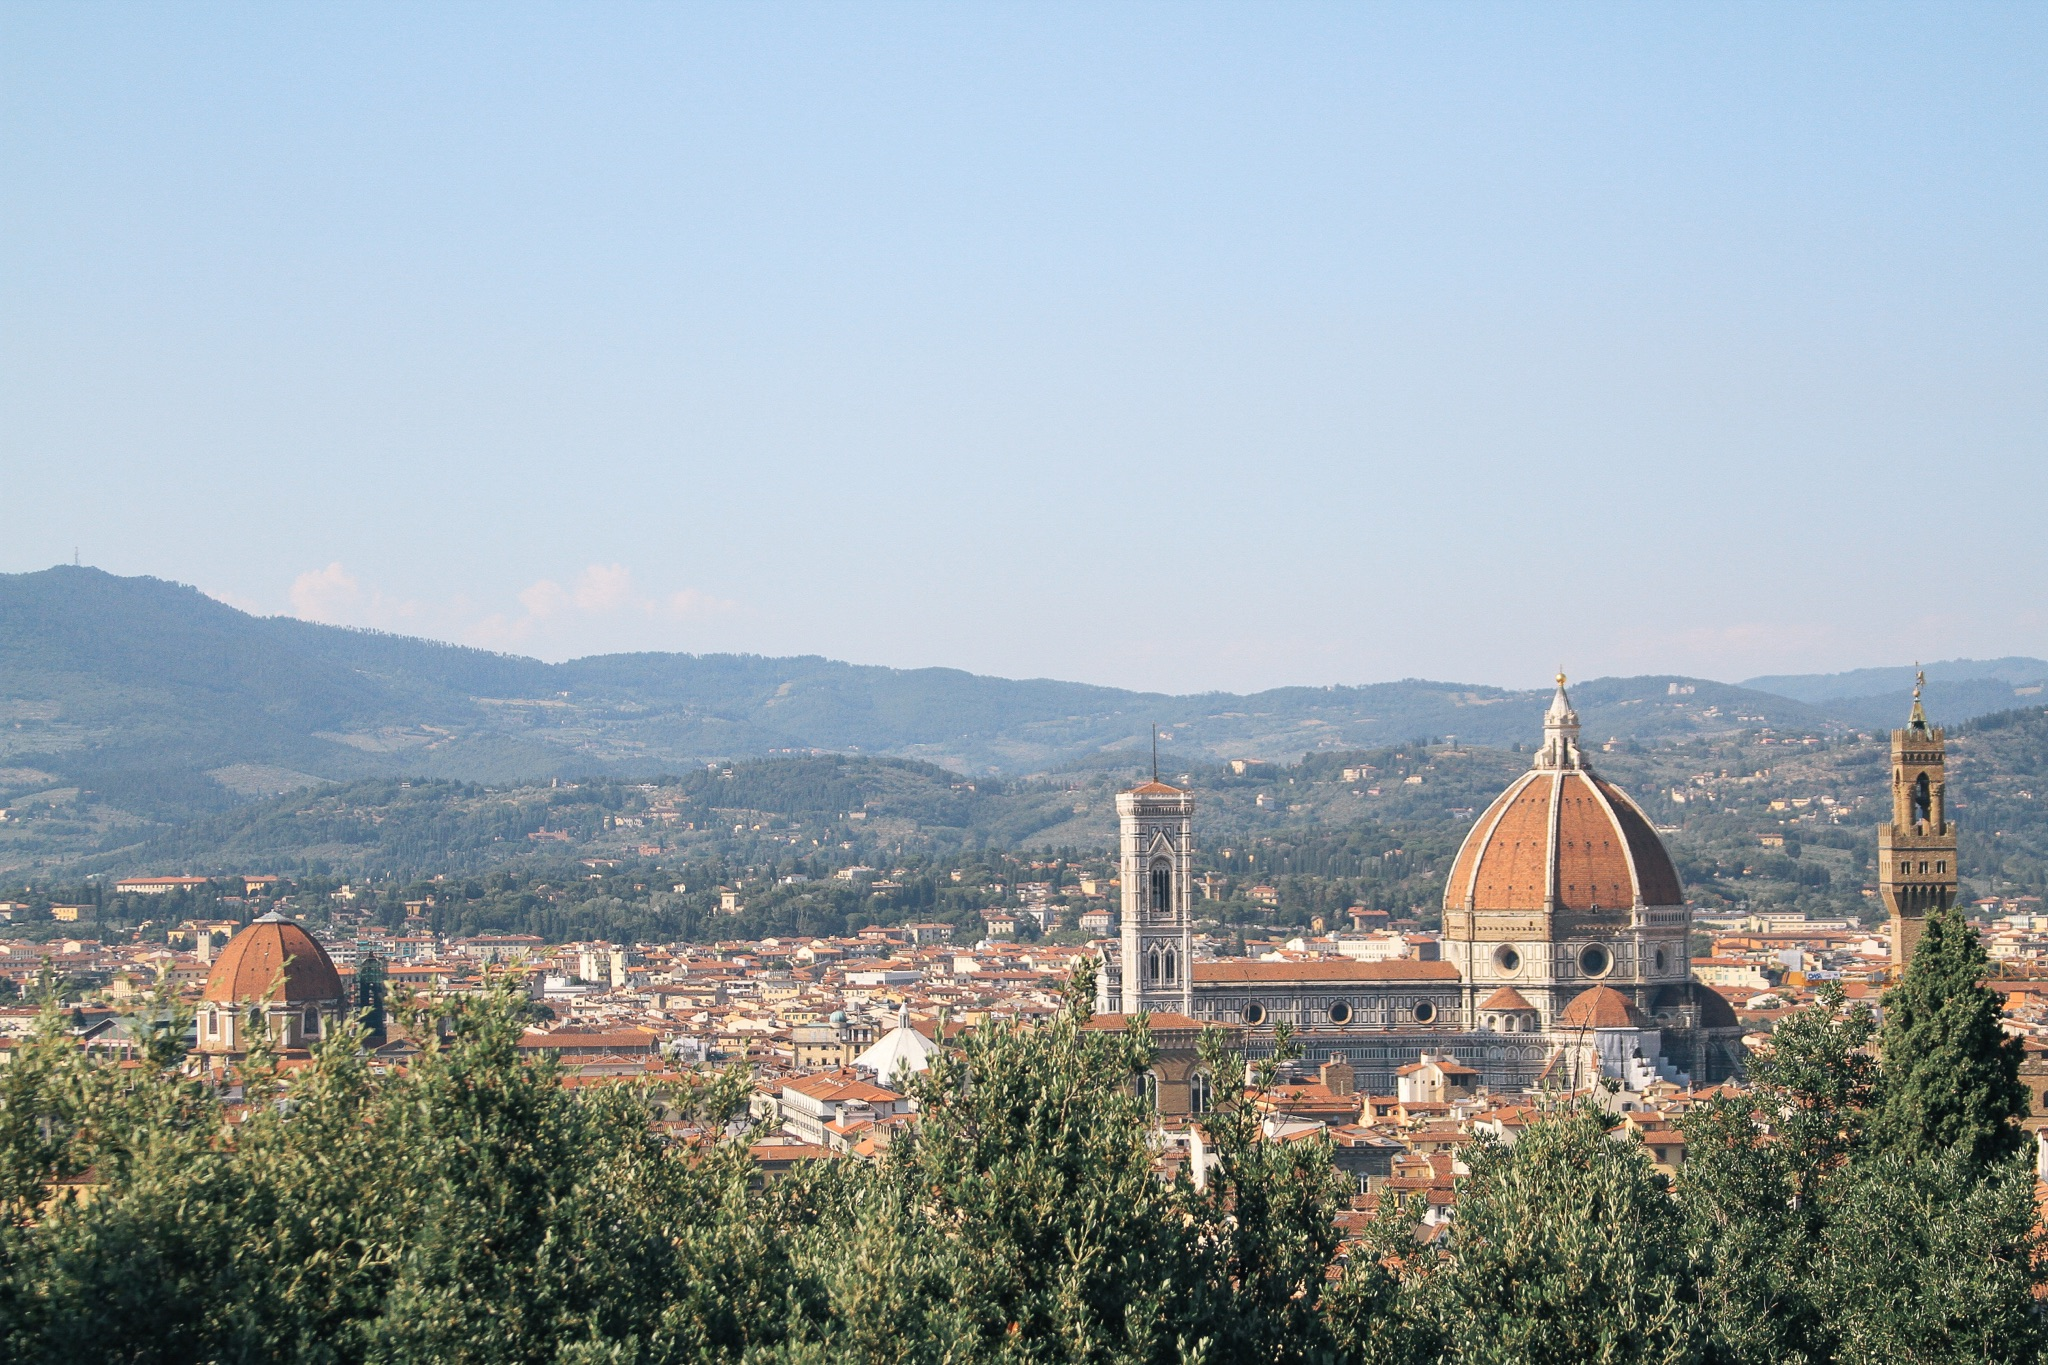 How to Plan Your Itinerary in Florence | Florence, Italy is one of the friendliest cities in the world. Here are the best things to do and places to go, from restaurants and views to Tuscany day trips. Use any ideas you like, then mix and match them into an itinerary of your own. Complete with a travel map and packing ideas! #florence #italy #itinerary